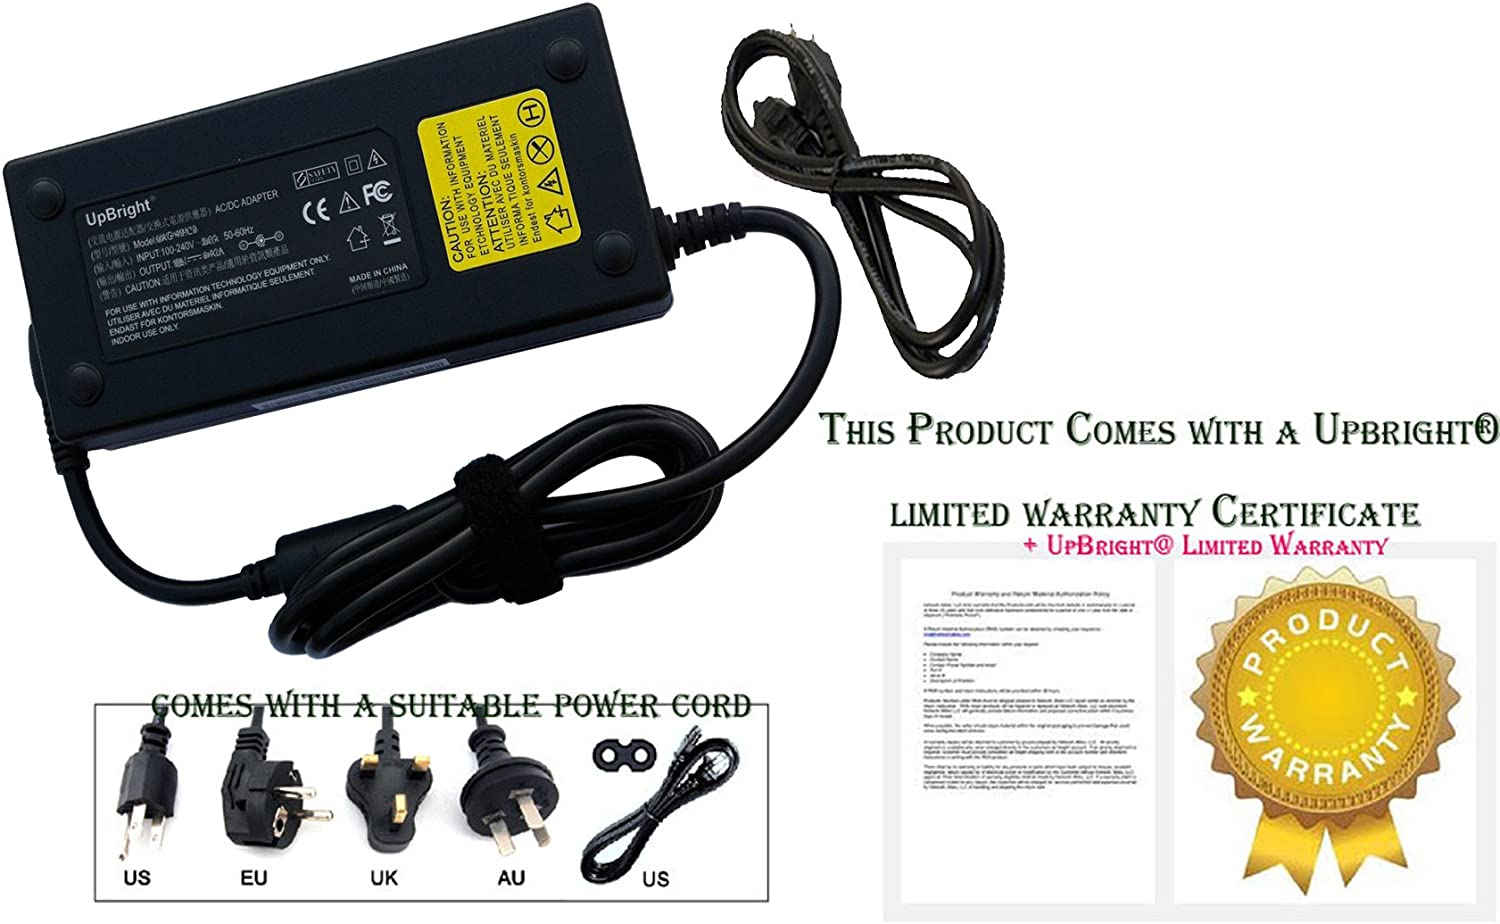 UpBright New 135W Global AC/DC Adapter for 592491-001 HP 8000 Elite Ultra-Slim DC7800 Ultra-Slim PC 437796-001 Power Supply Cord Cable PS Battery Charger Mains PSU